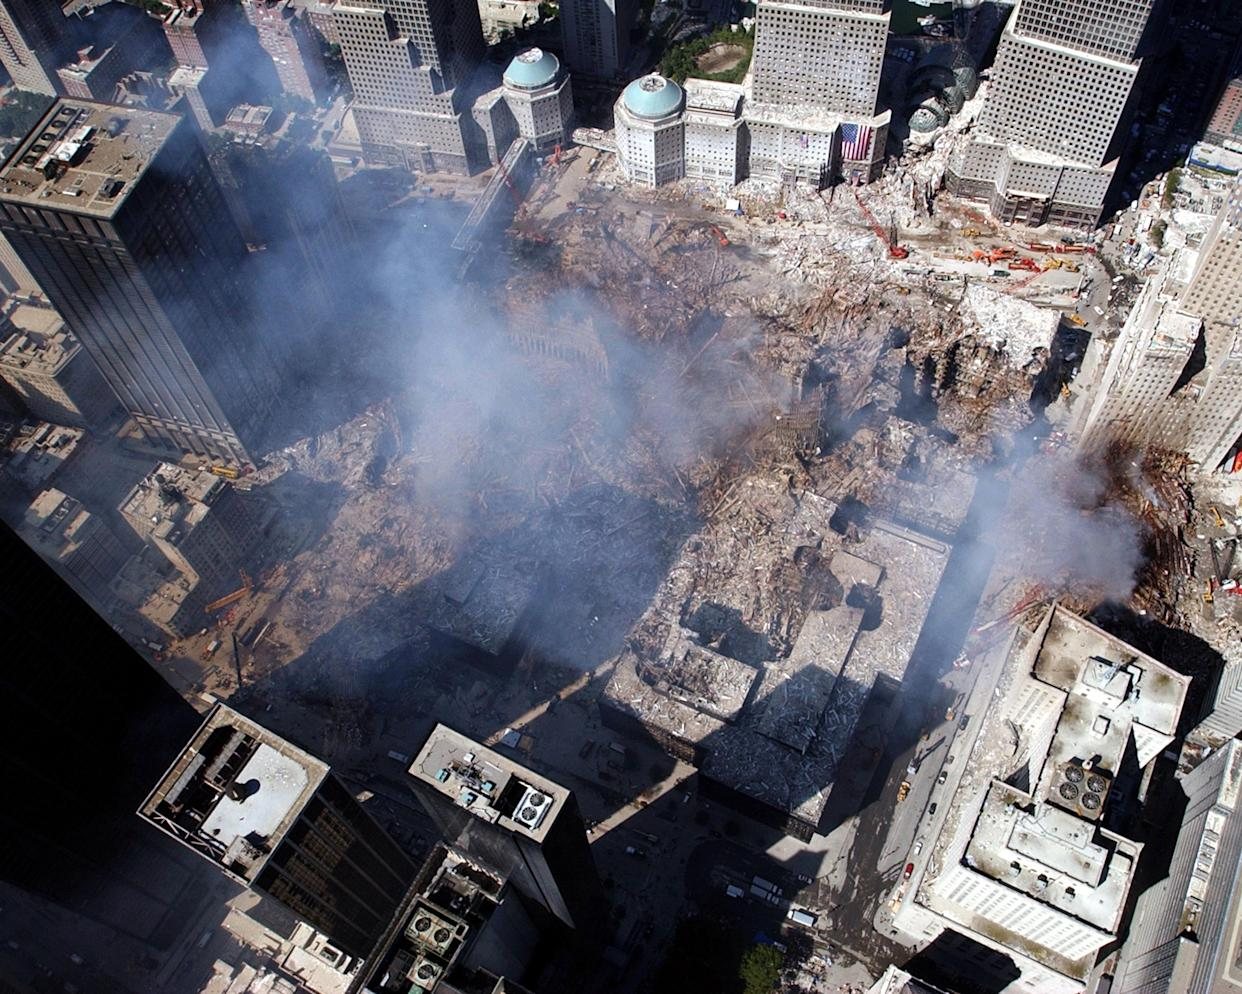 An aerial view shows only a small portion of the crime scene where the World Trade Center collapsed following the Sept. 11 terrorist attack.  Surrounding buildings were heavily damaged by the debris and massive force of the falling twin towers.   (Photo Credit: U.S. Navy/Eric J. Tilford)